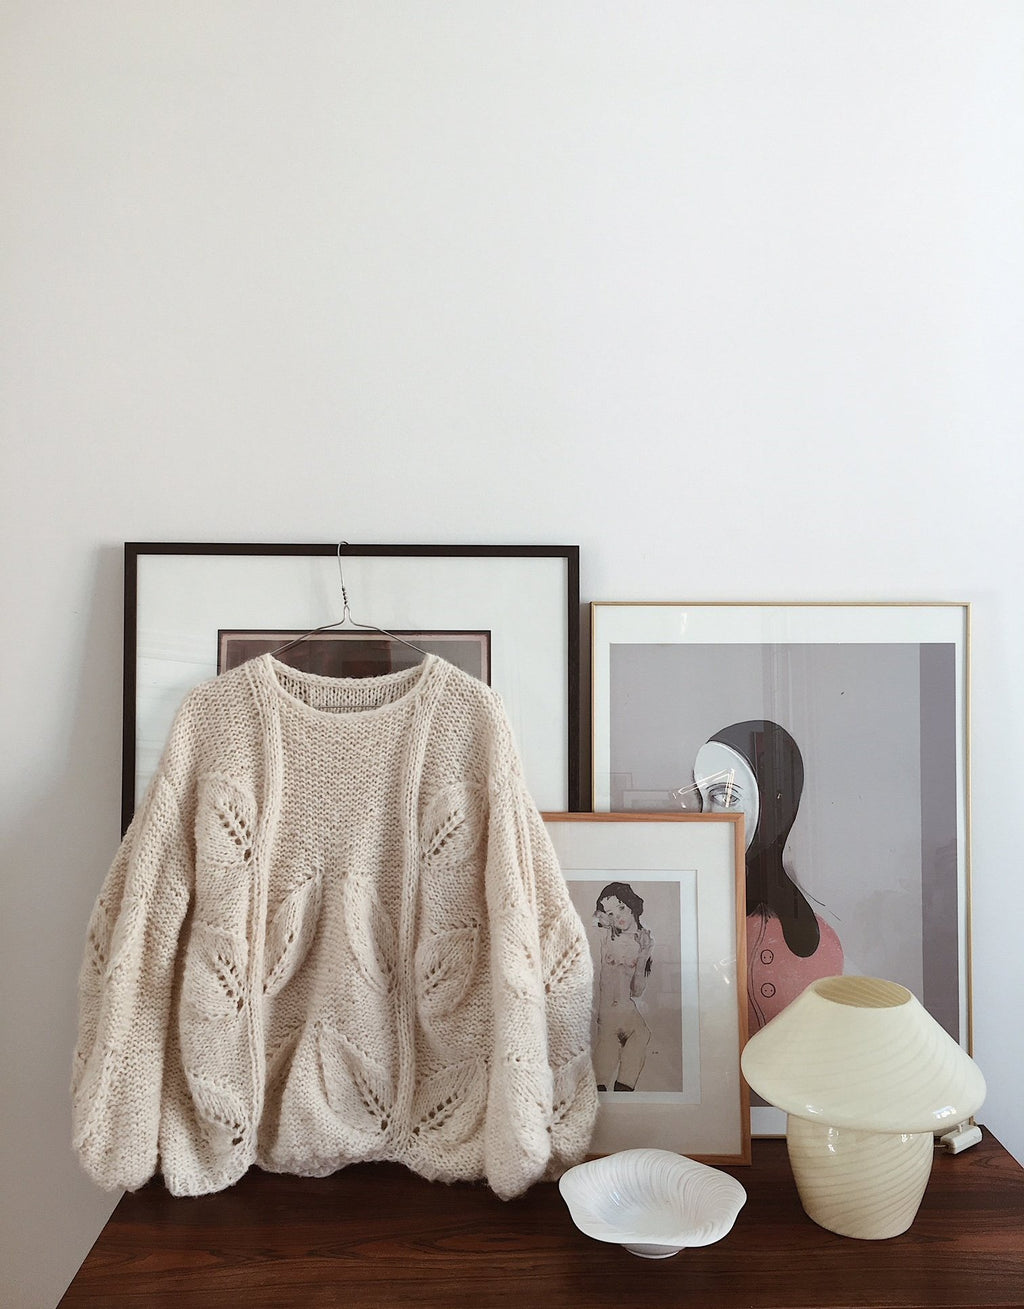 Sweater No. 3